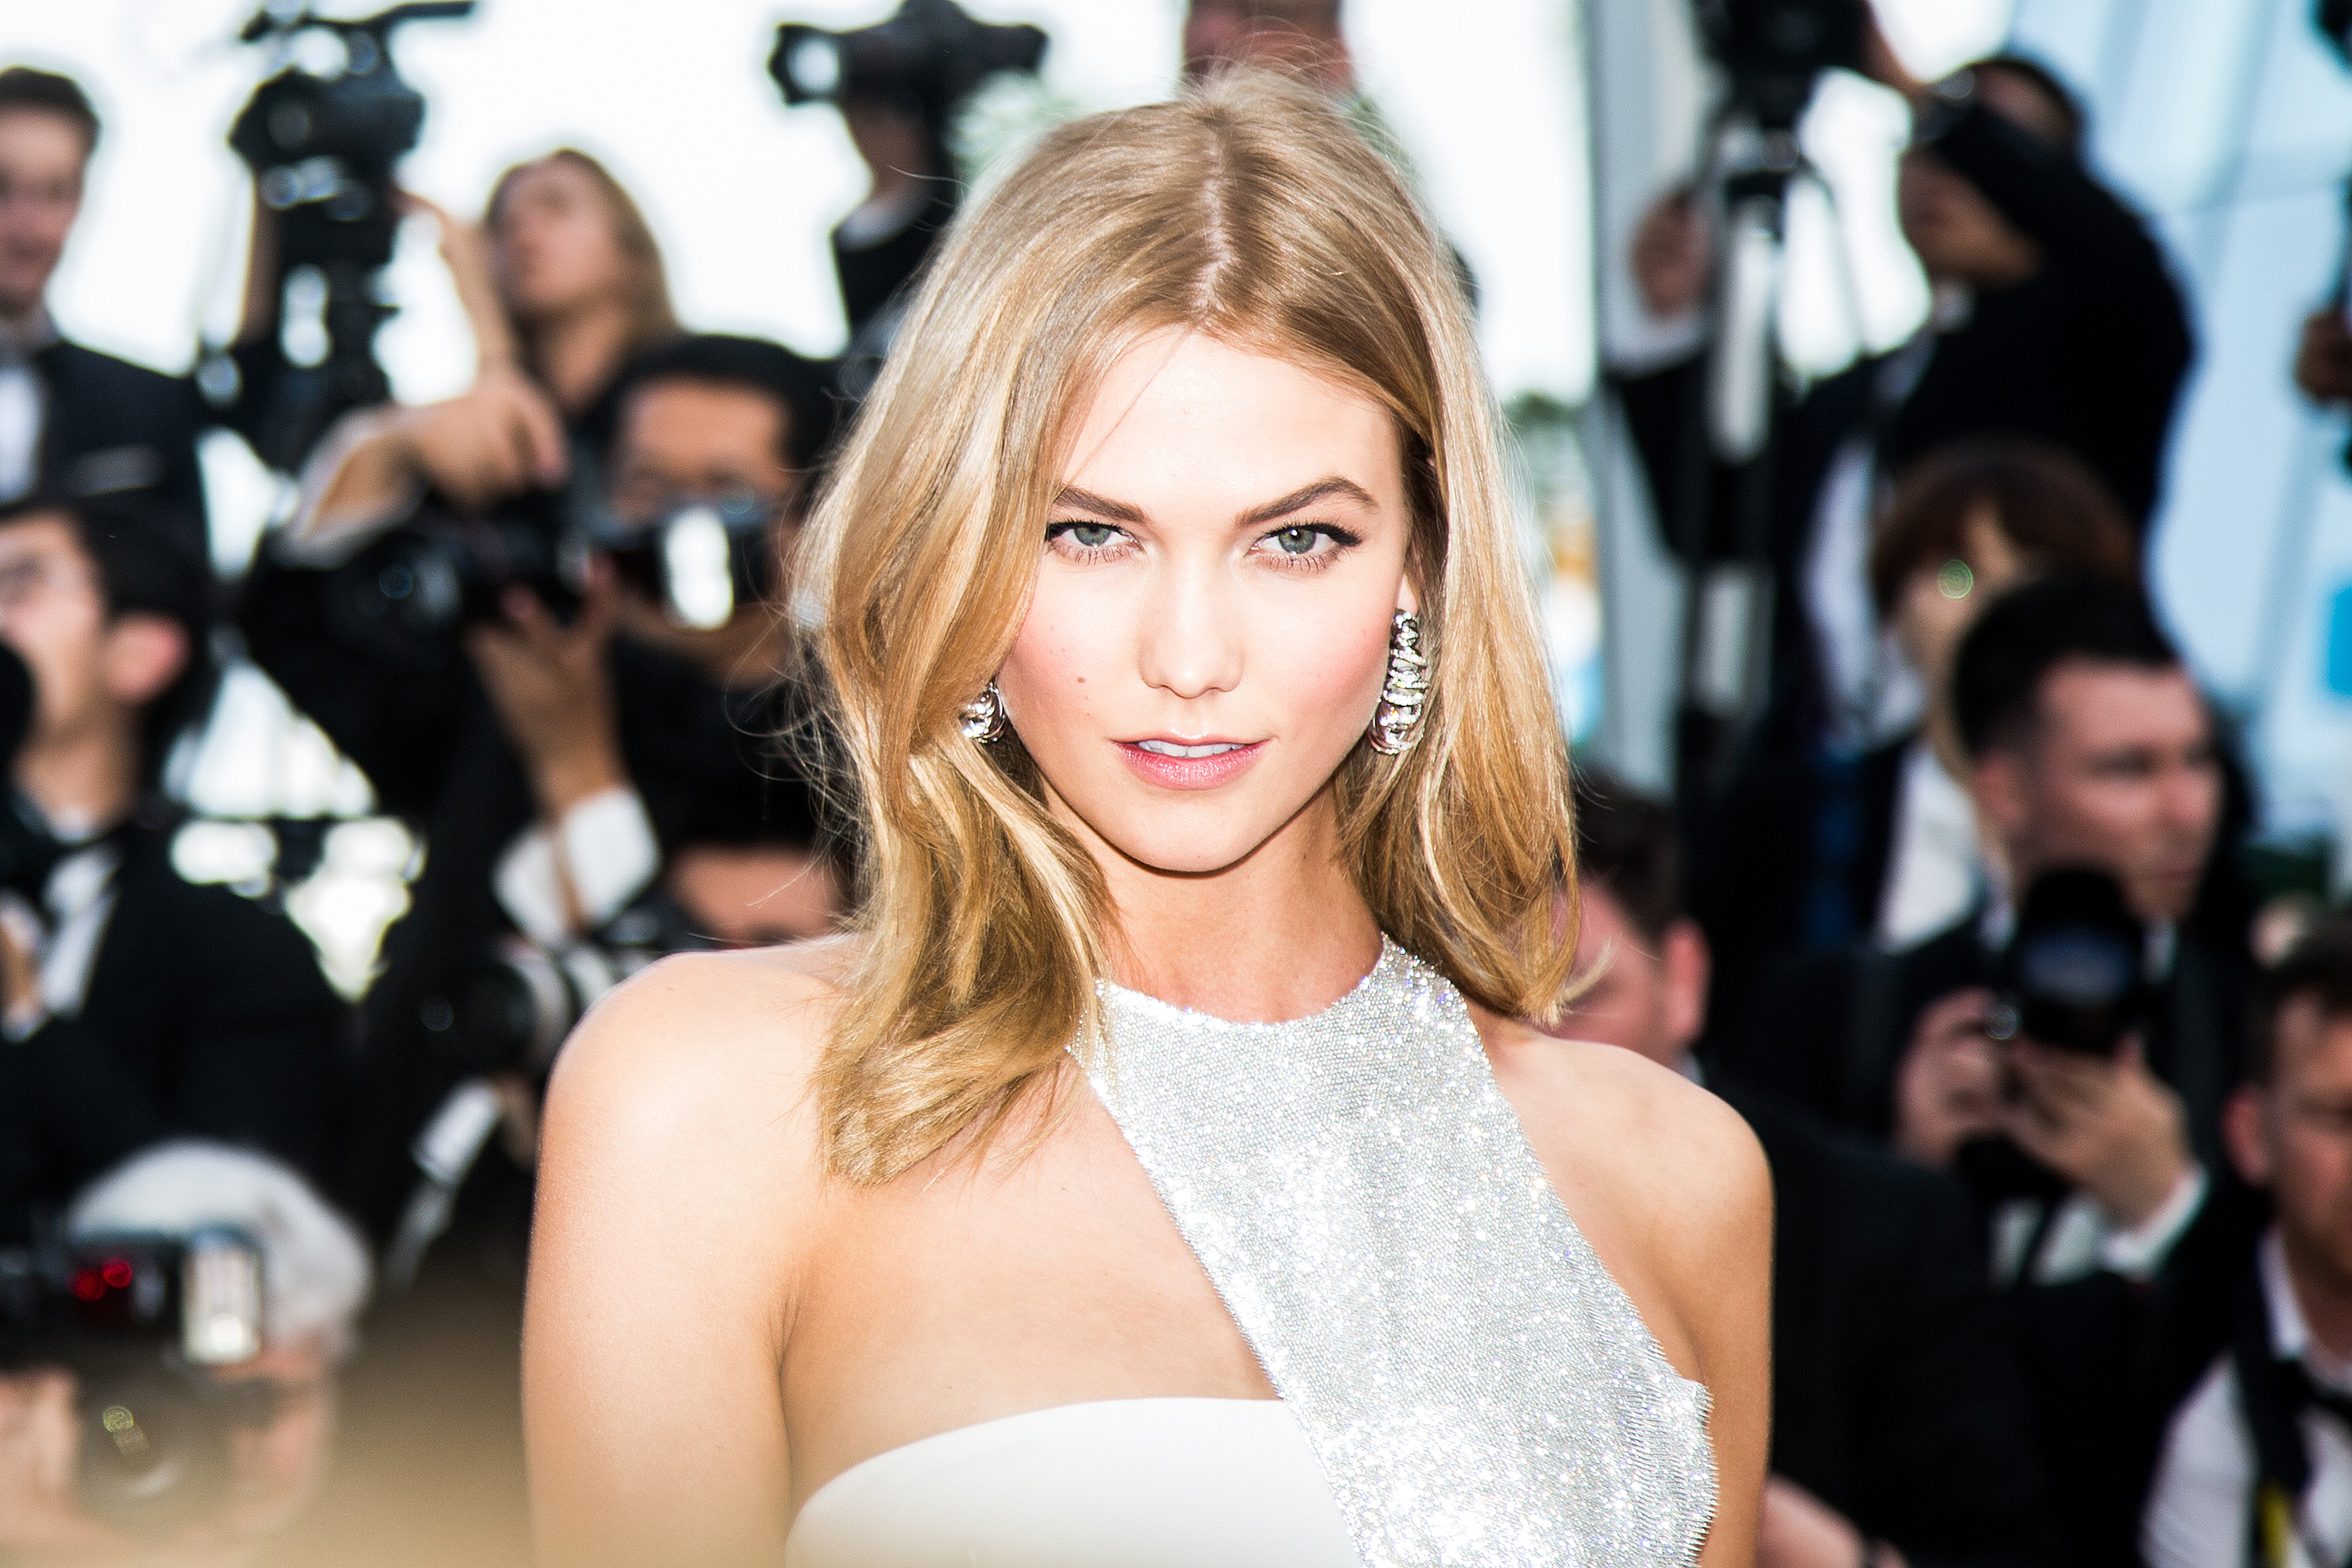 Famous American Supermodel Karlie Kloss Modeling At The Opening Ceremony And Premiere Of 'La Tete Haute' ('Standing Tall') During The 68th Annual Cannes Film Festival In Beautiful Cannes, France.